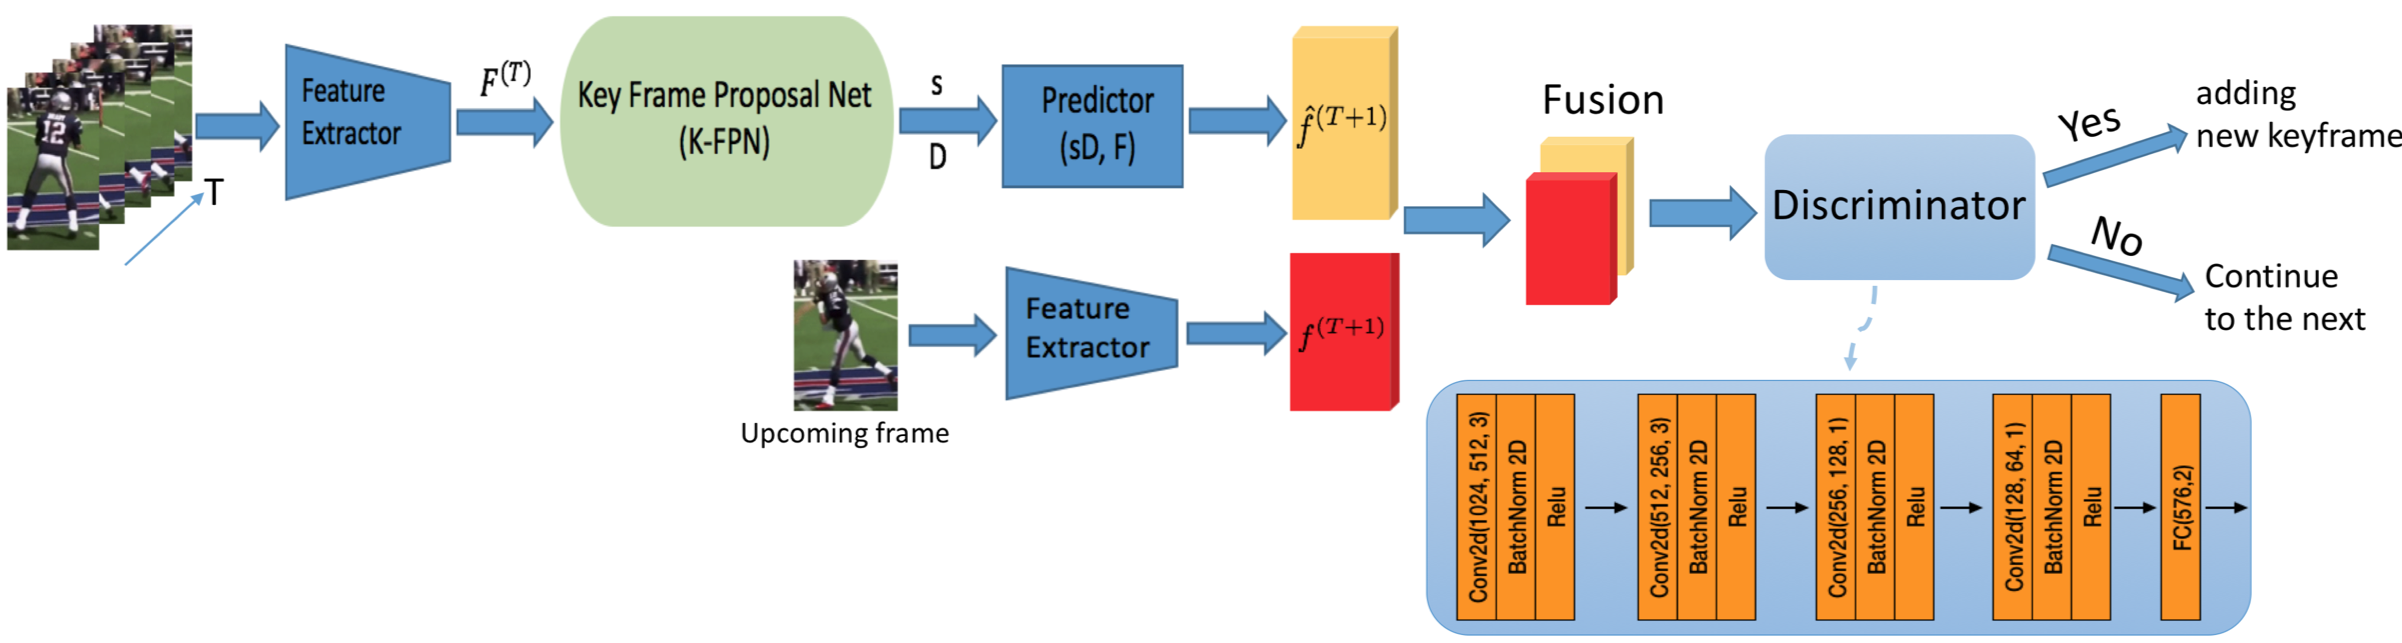 The discriminator distinguishes between input features and features predicted from previous key frames to decide if a new frame should be added as a key frame.